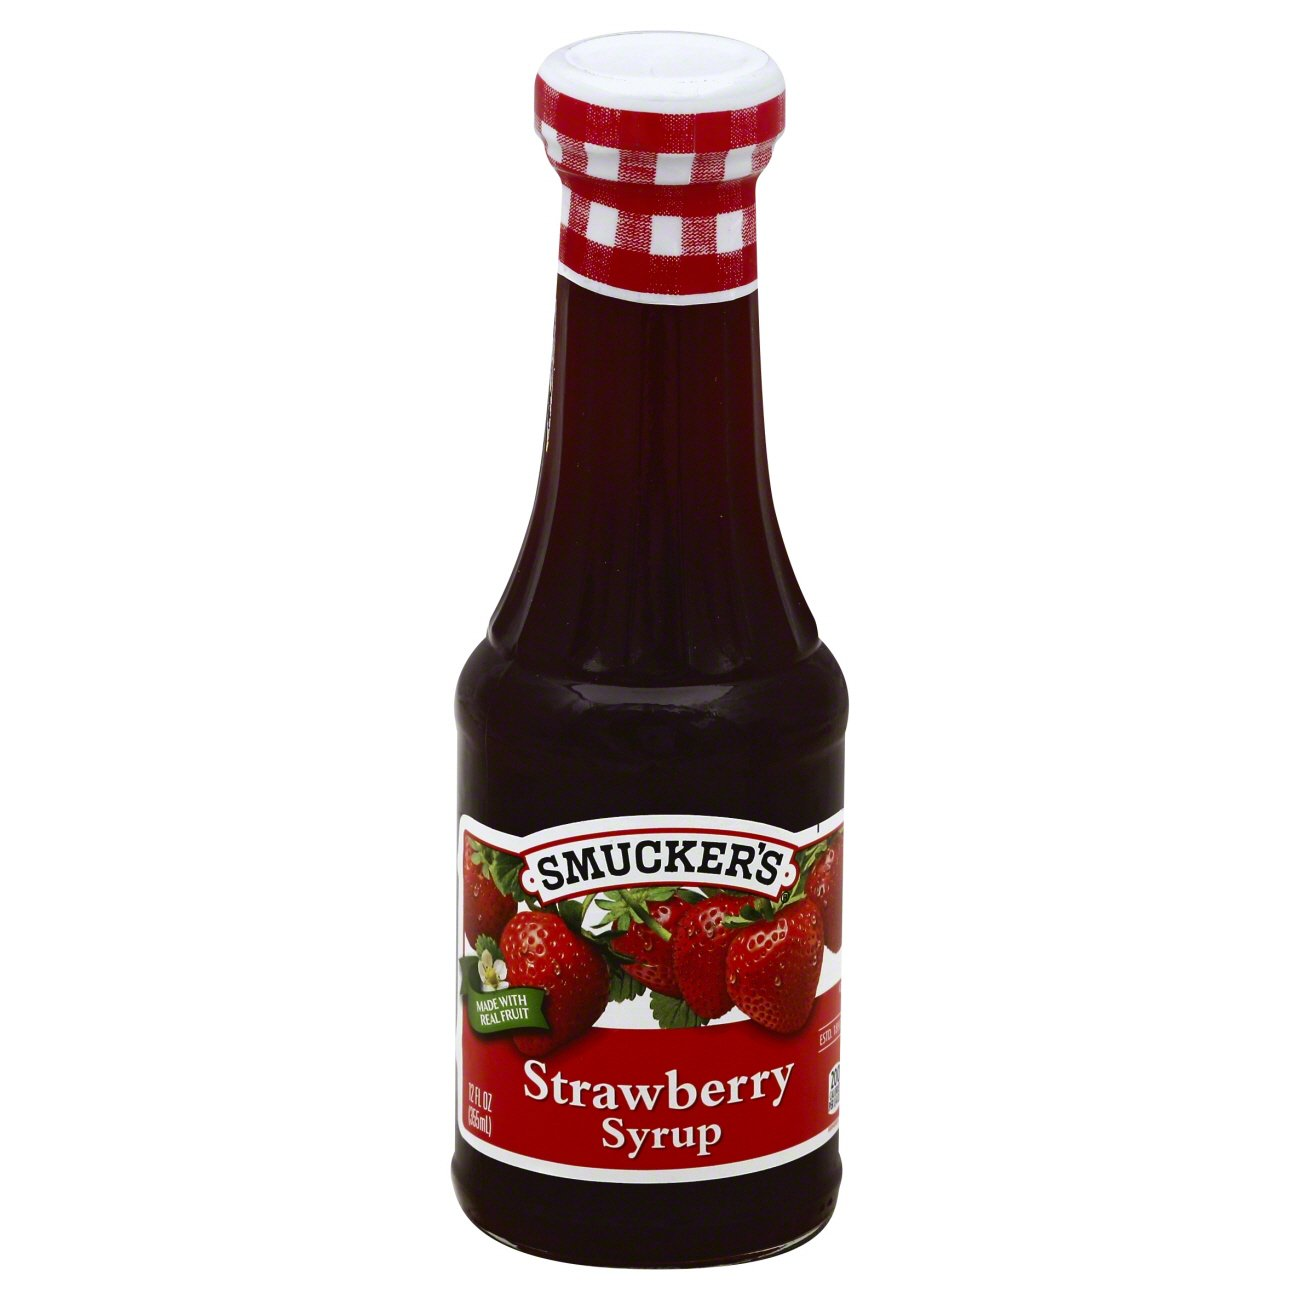 Smucker's Strawberry Syrup - Shop Syrup